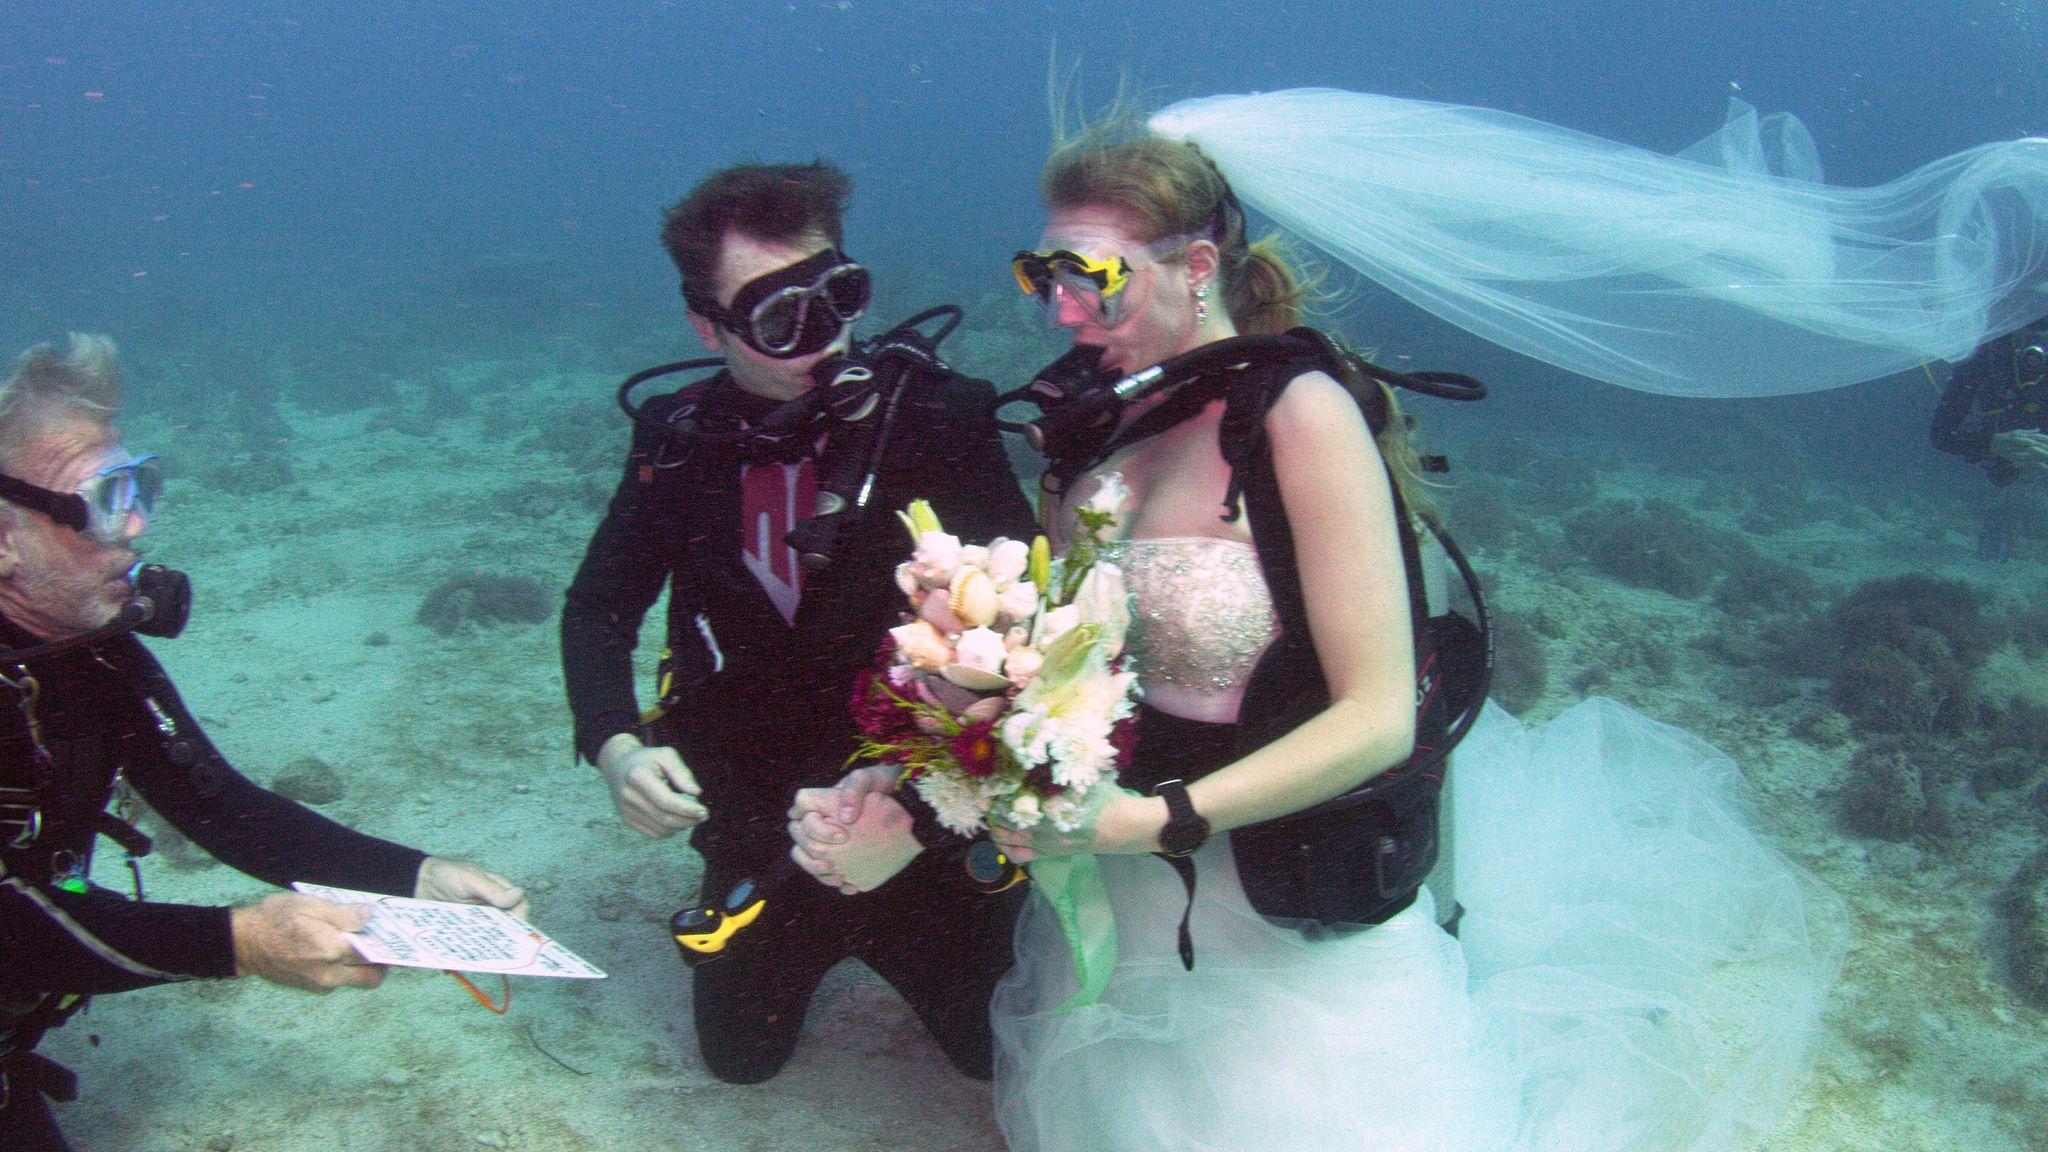 In sea sickness and in health: Couple stage underwater wedding | Offbeat  News | Sky News